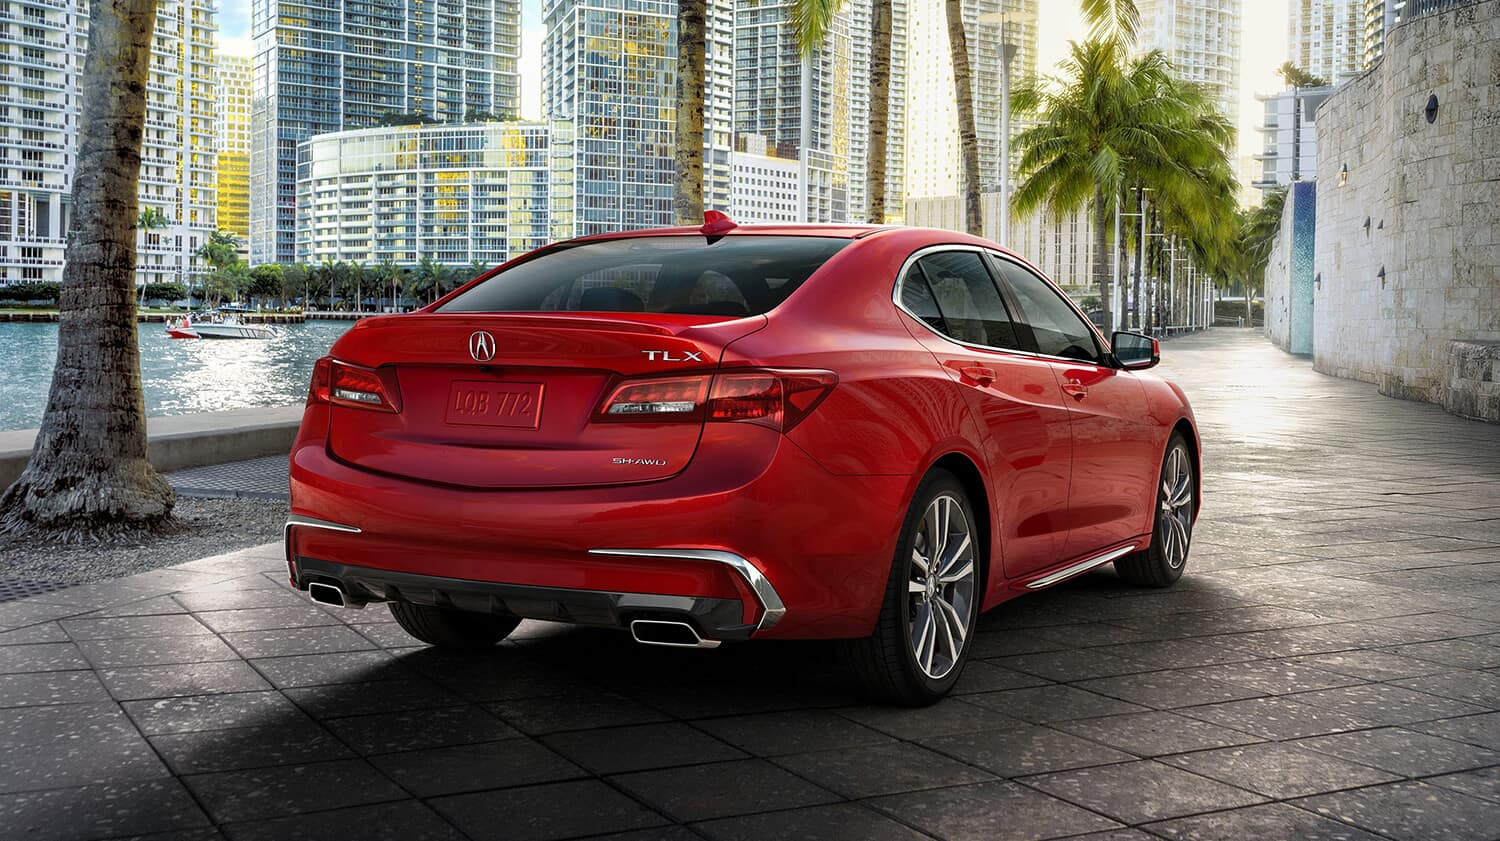 2020 Acura TLX Exterior Rear Angle Passenger Side Palm Trees